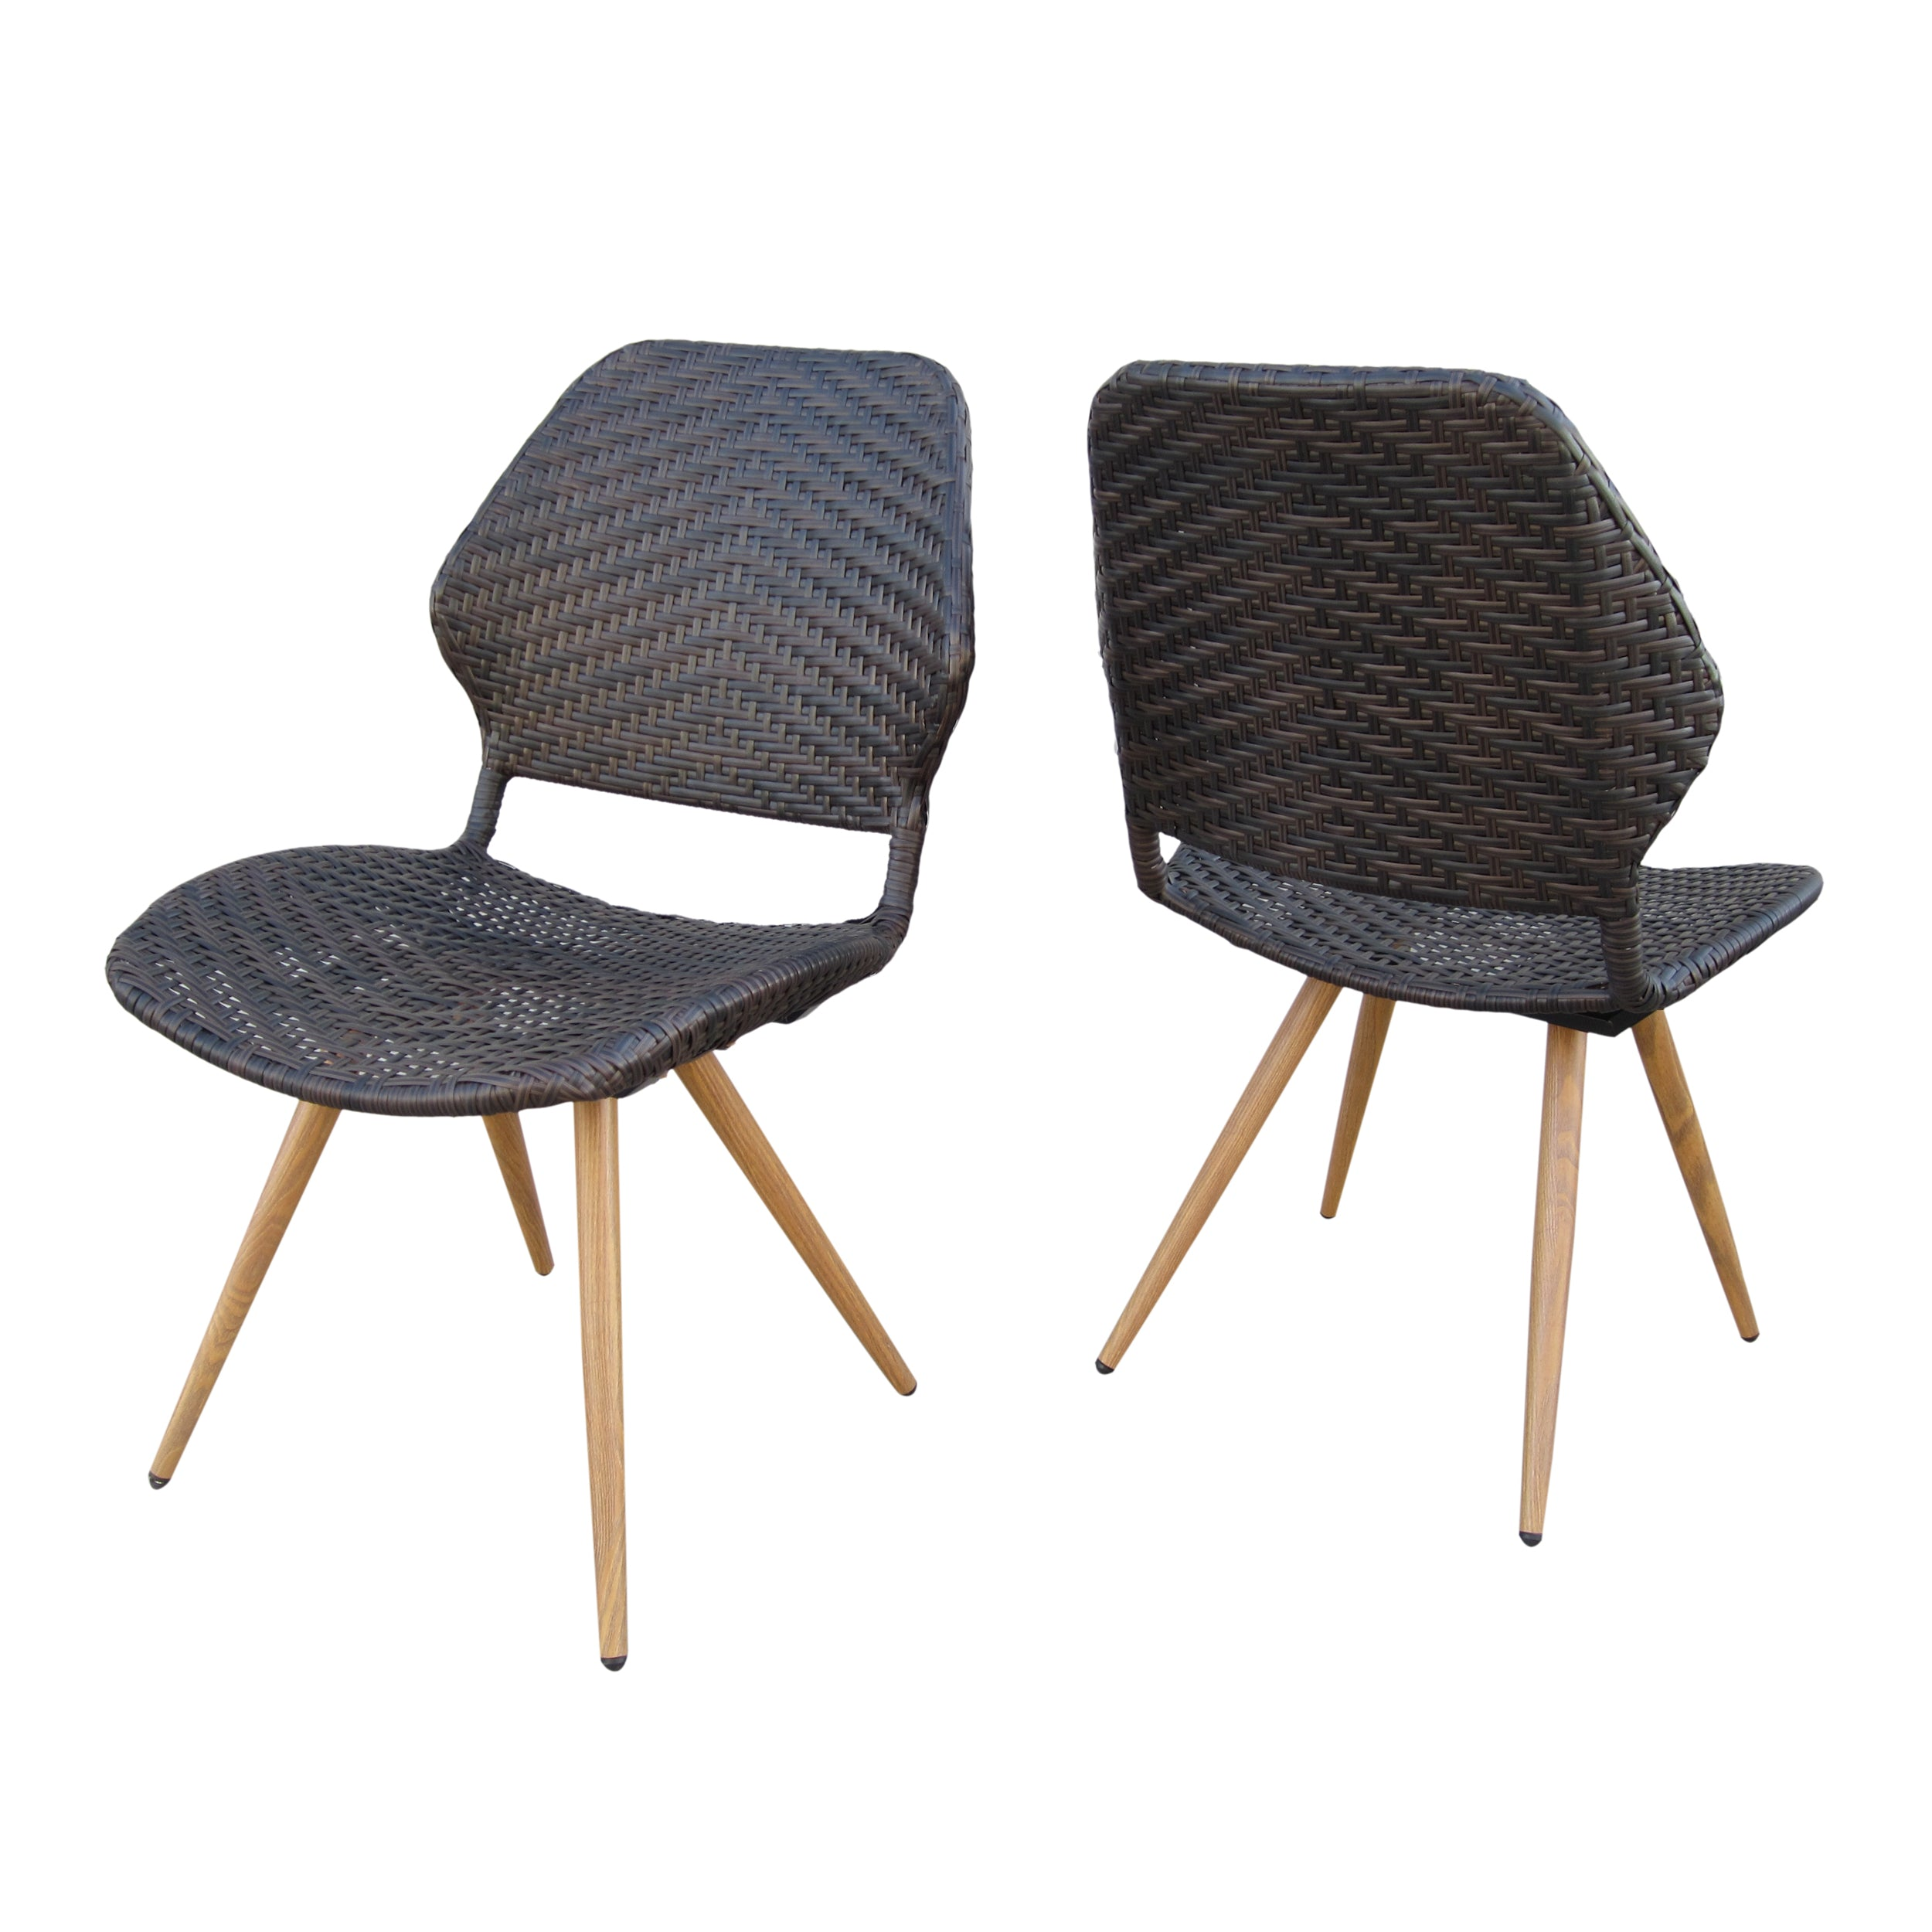 Amaya Outdoor Multi brown Wicker Dining Chairs with Brown Wood Finish Metal Legs Set of 2